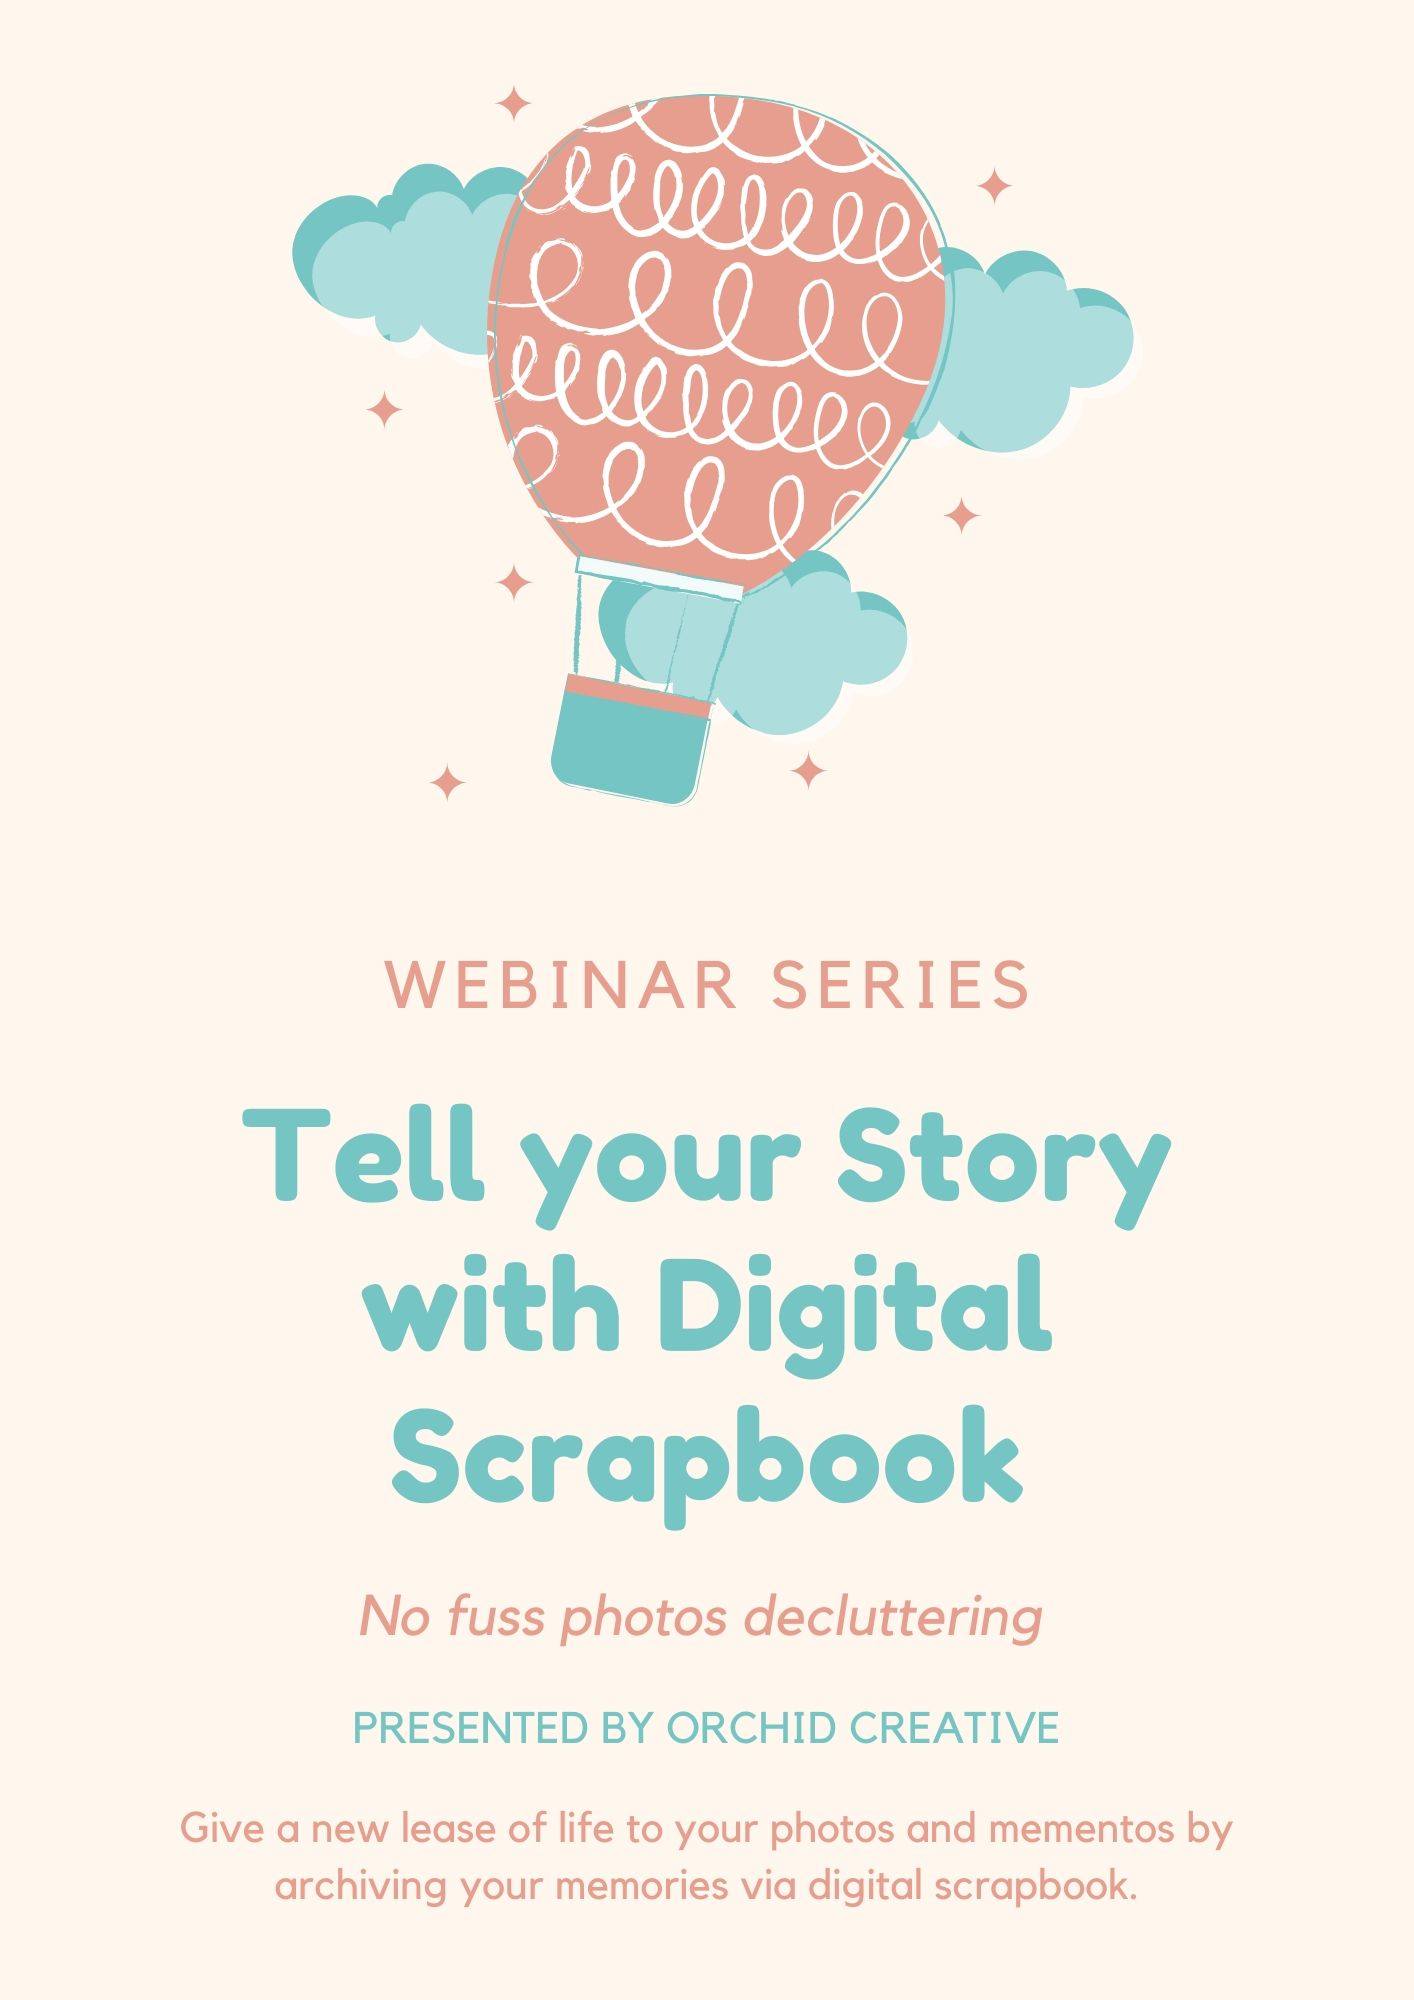 Tell Your Story with Digital Scrapbook Webinar Series